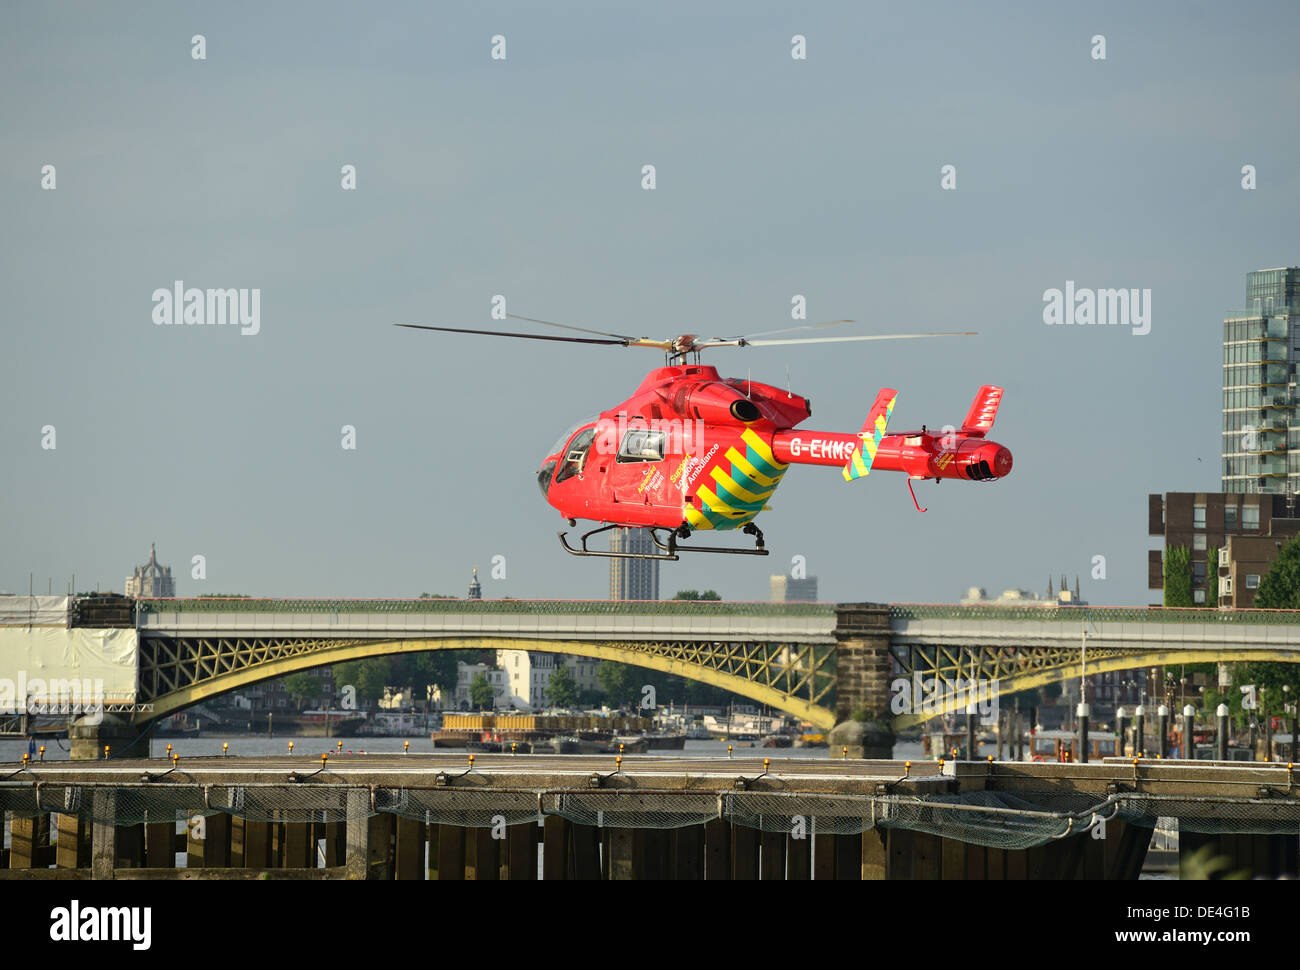 Helicopter rescue in London in action - Stock Image